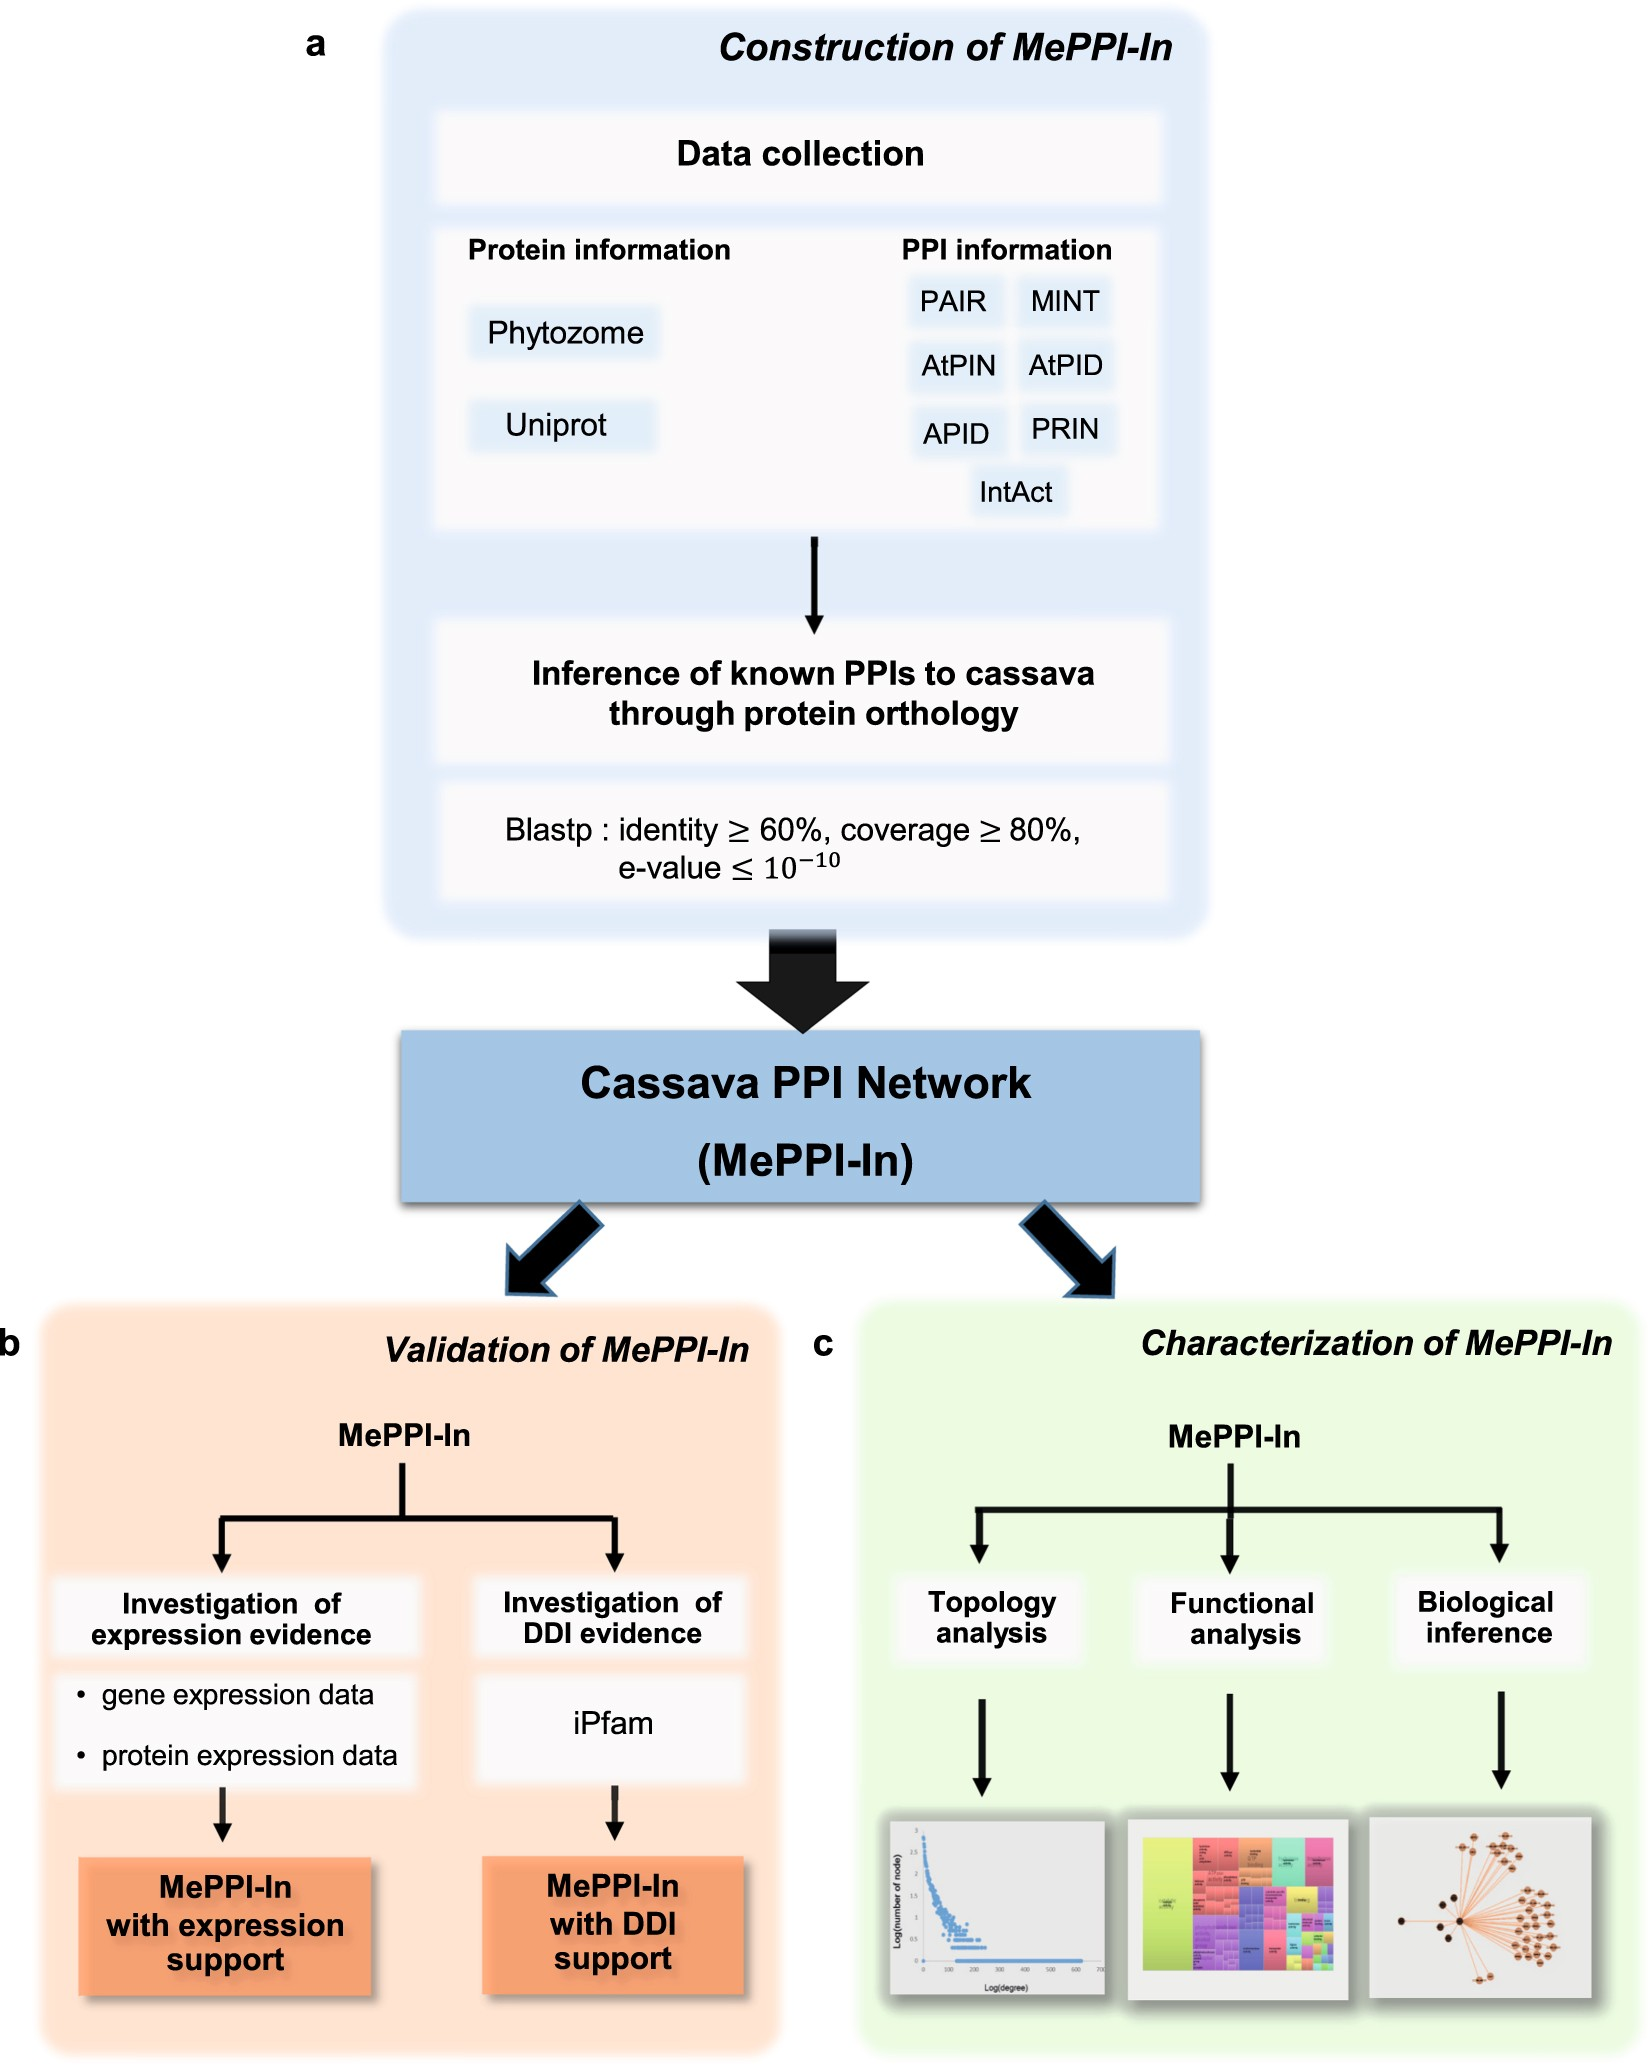 Prediction of cassava protein interactome based on interolog